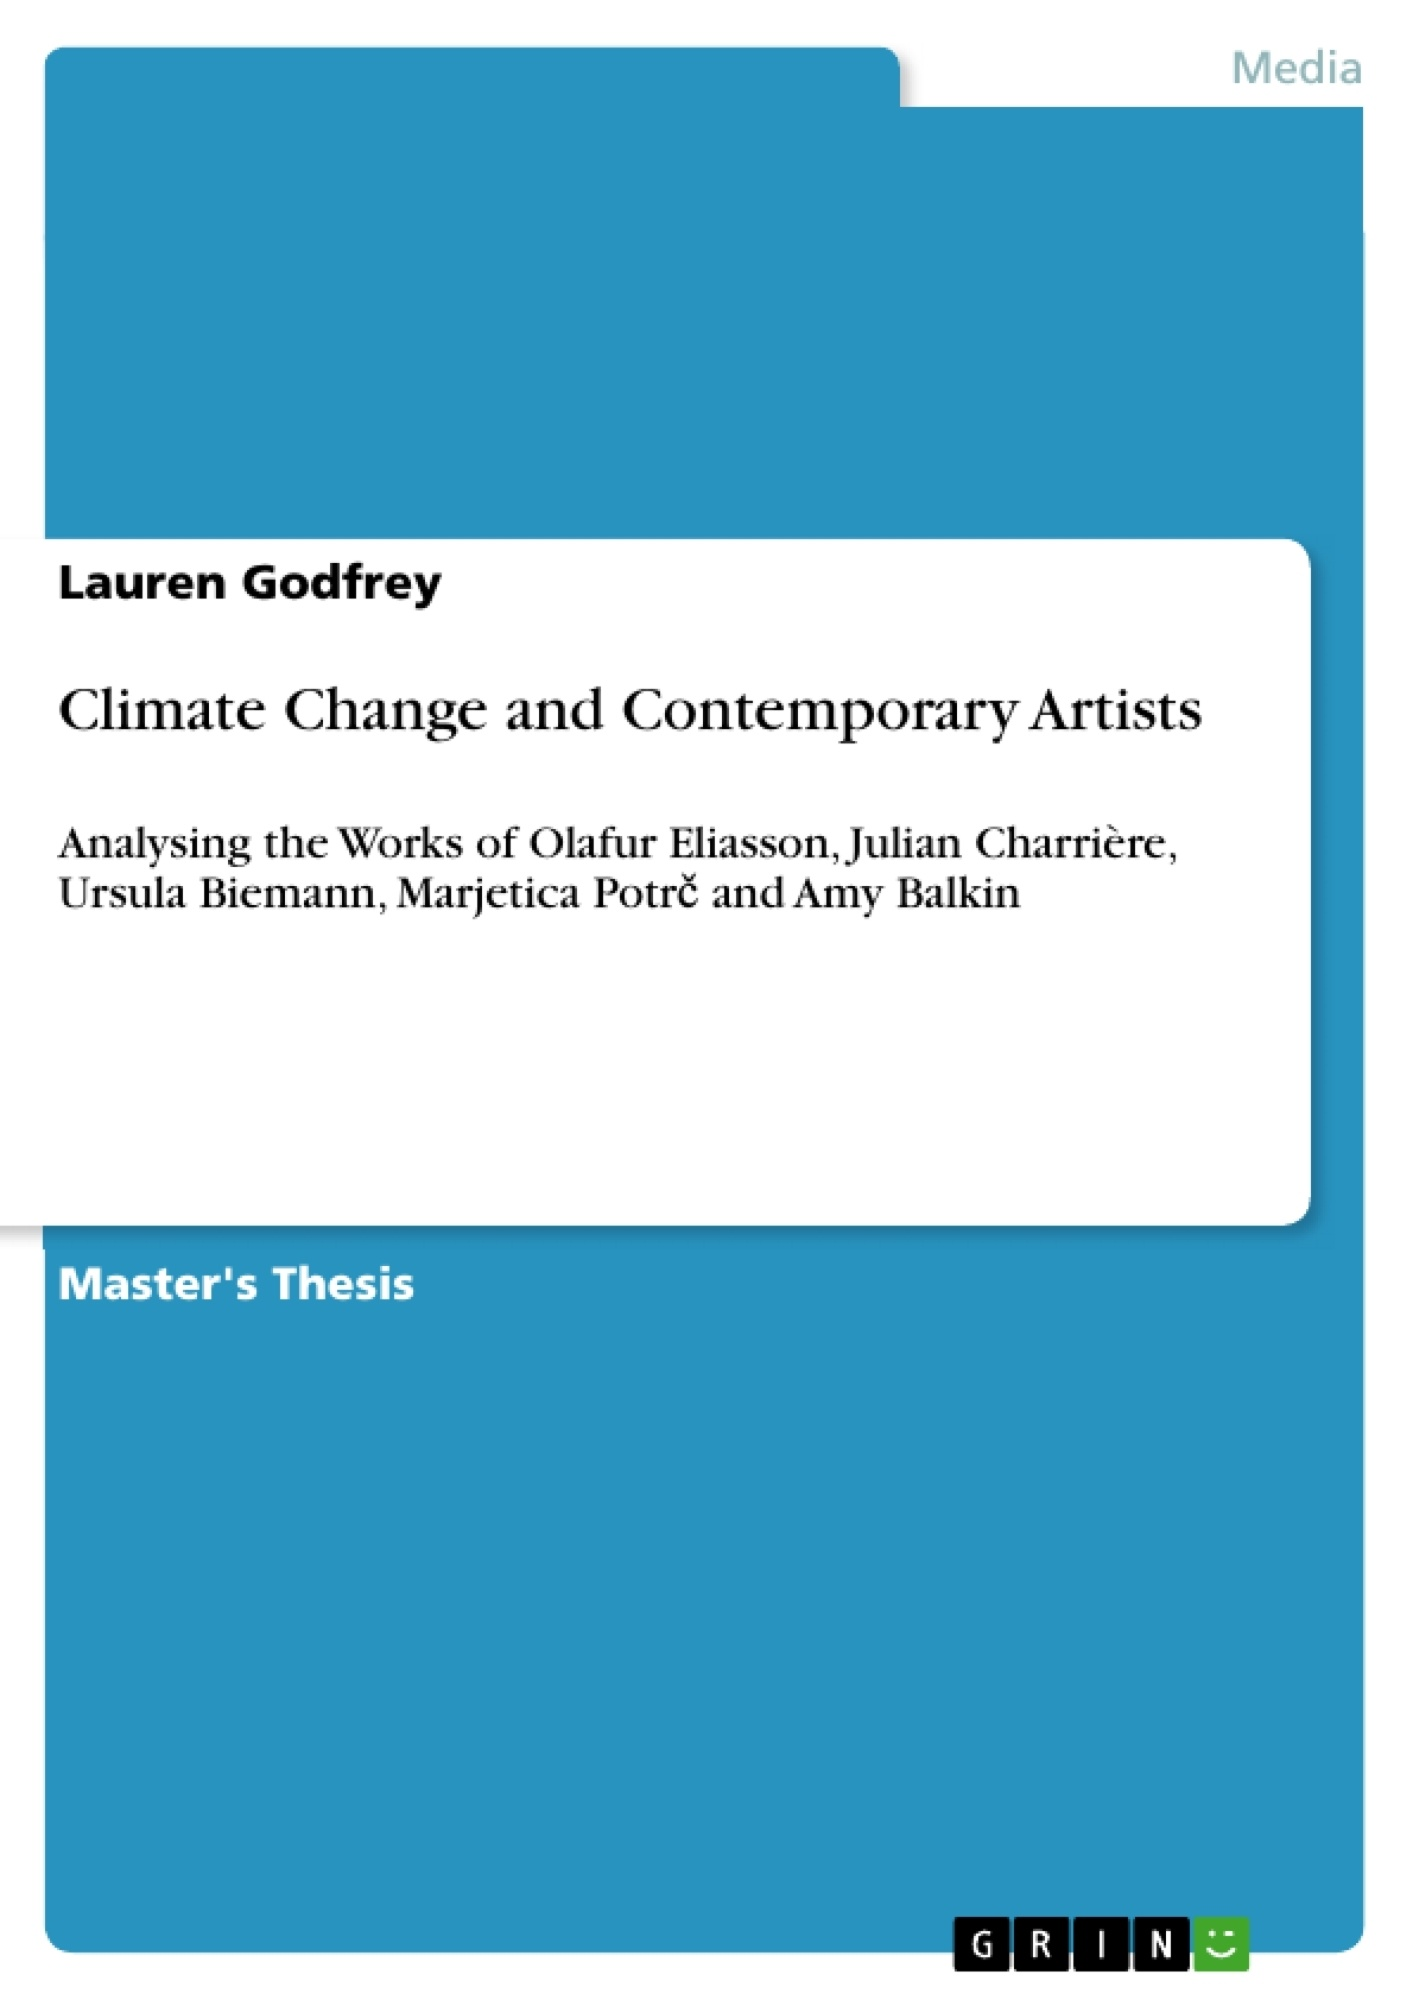 Title: Climate Change and Contemporary Artists